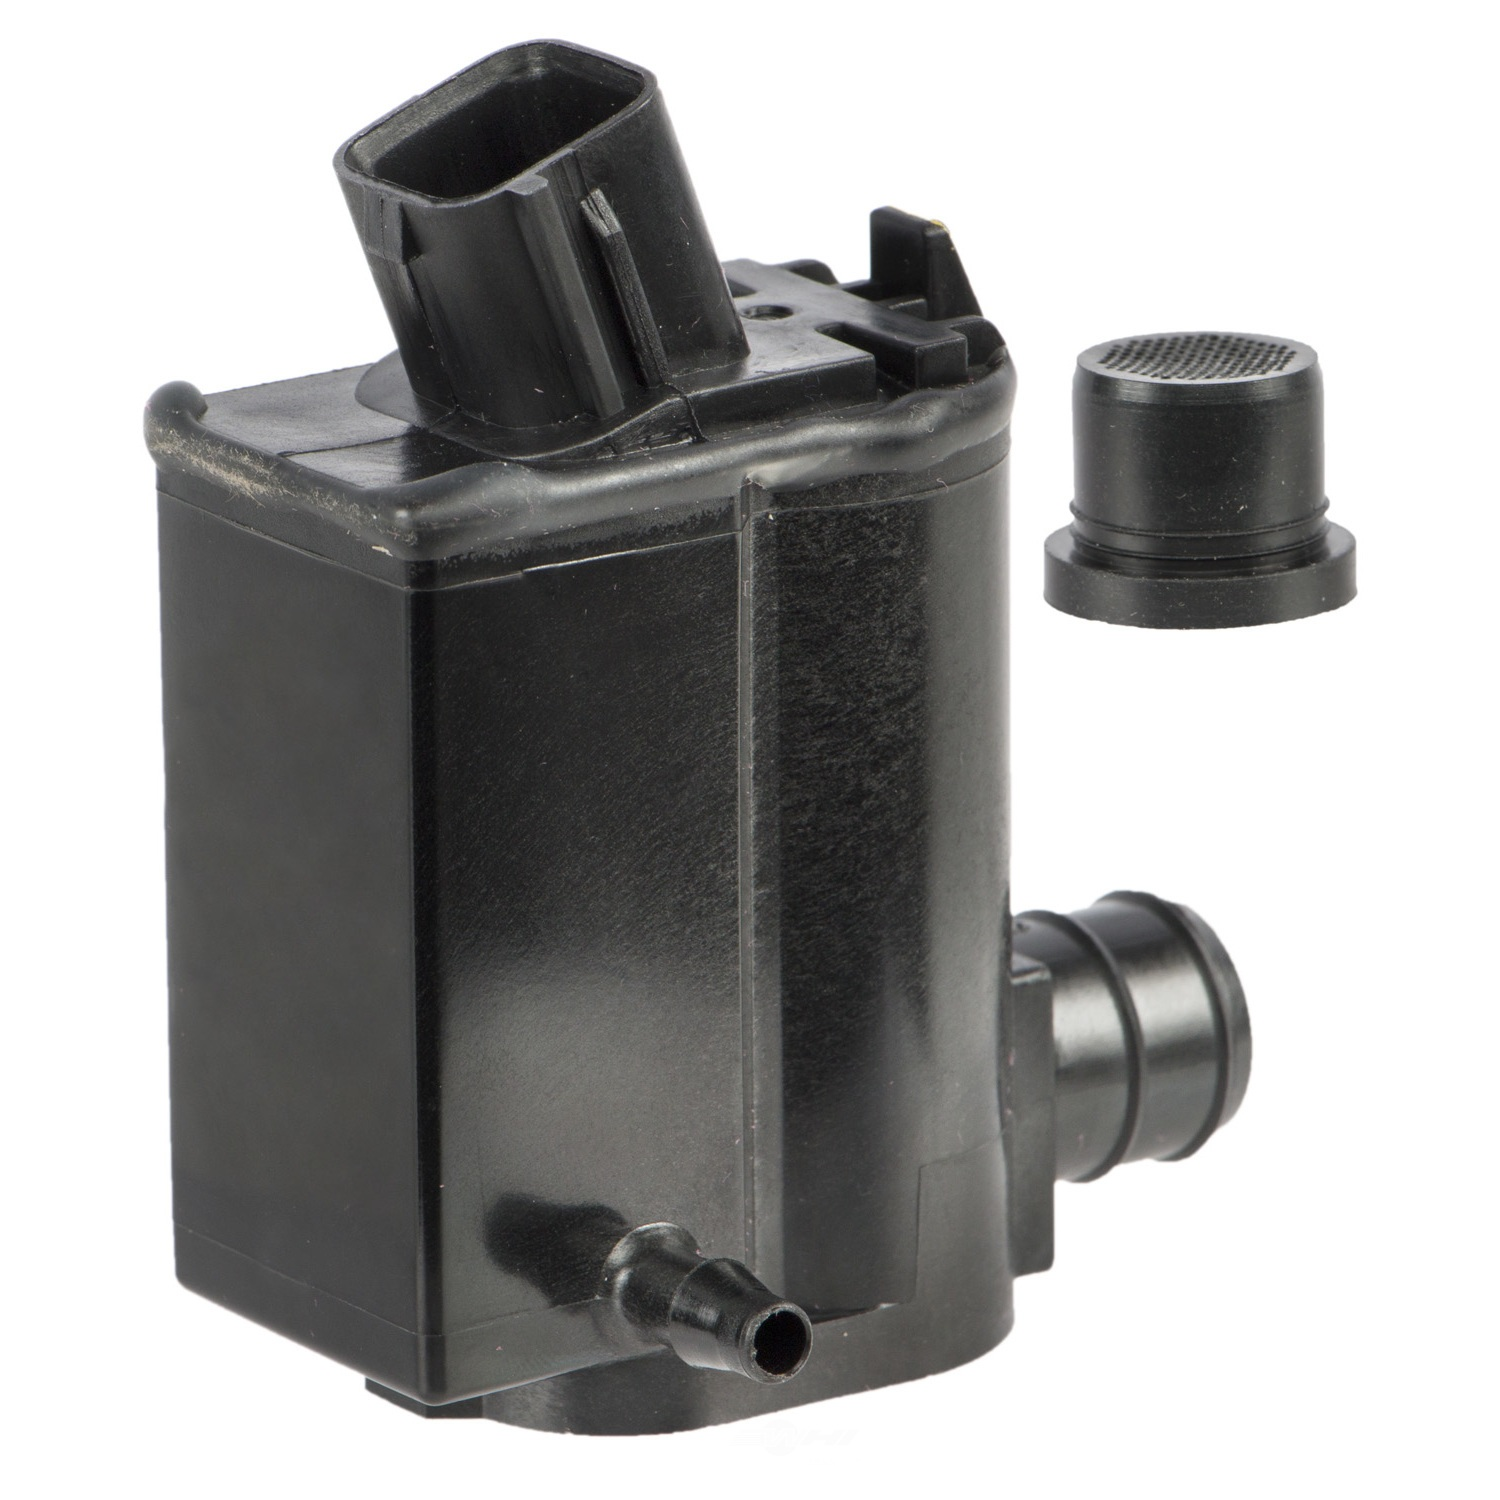 ANCO WIPER PRODUCTS - Windshield Washer Pump - ANC 67-43